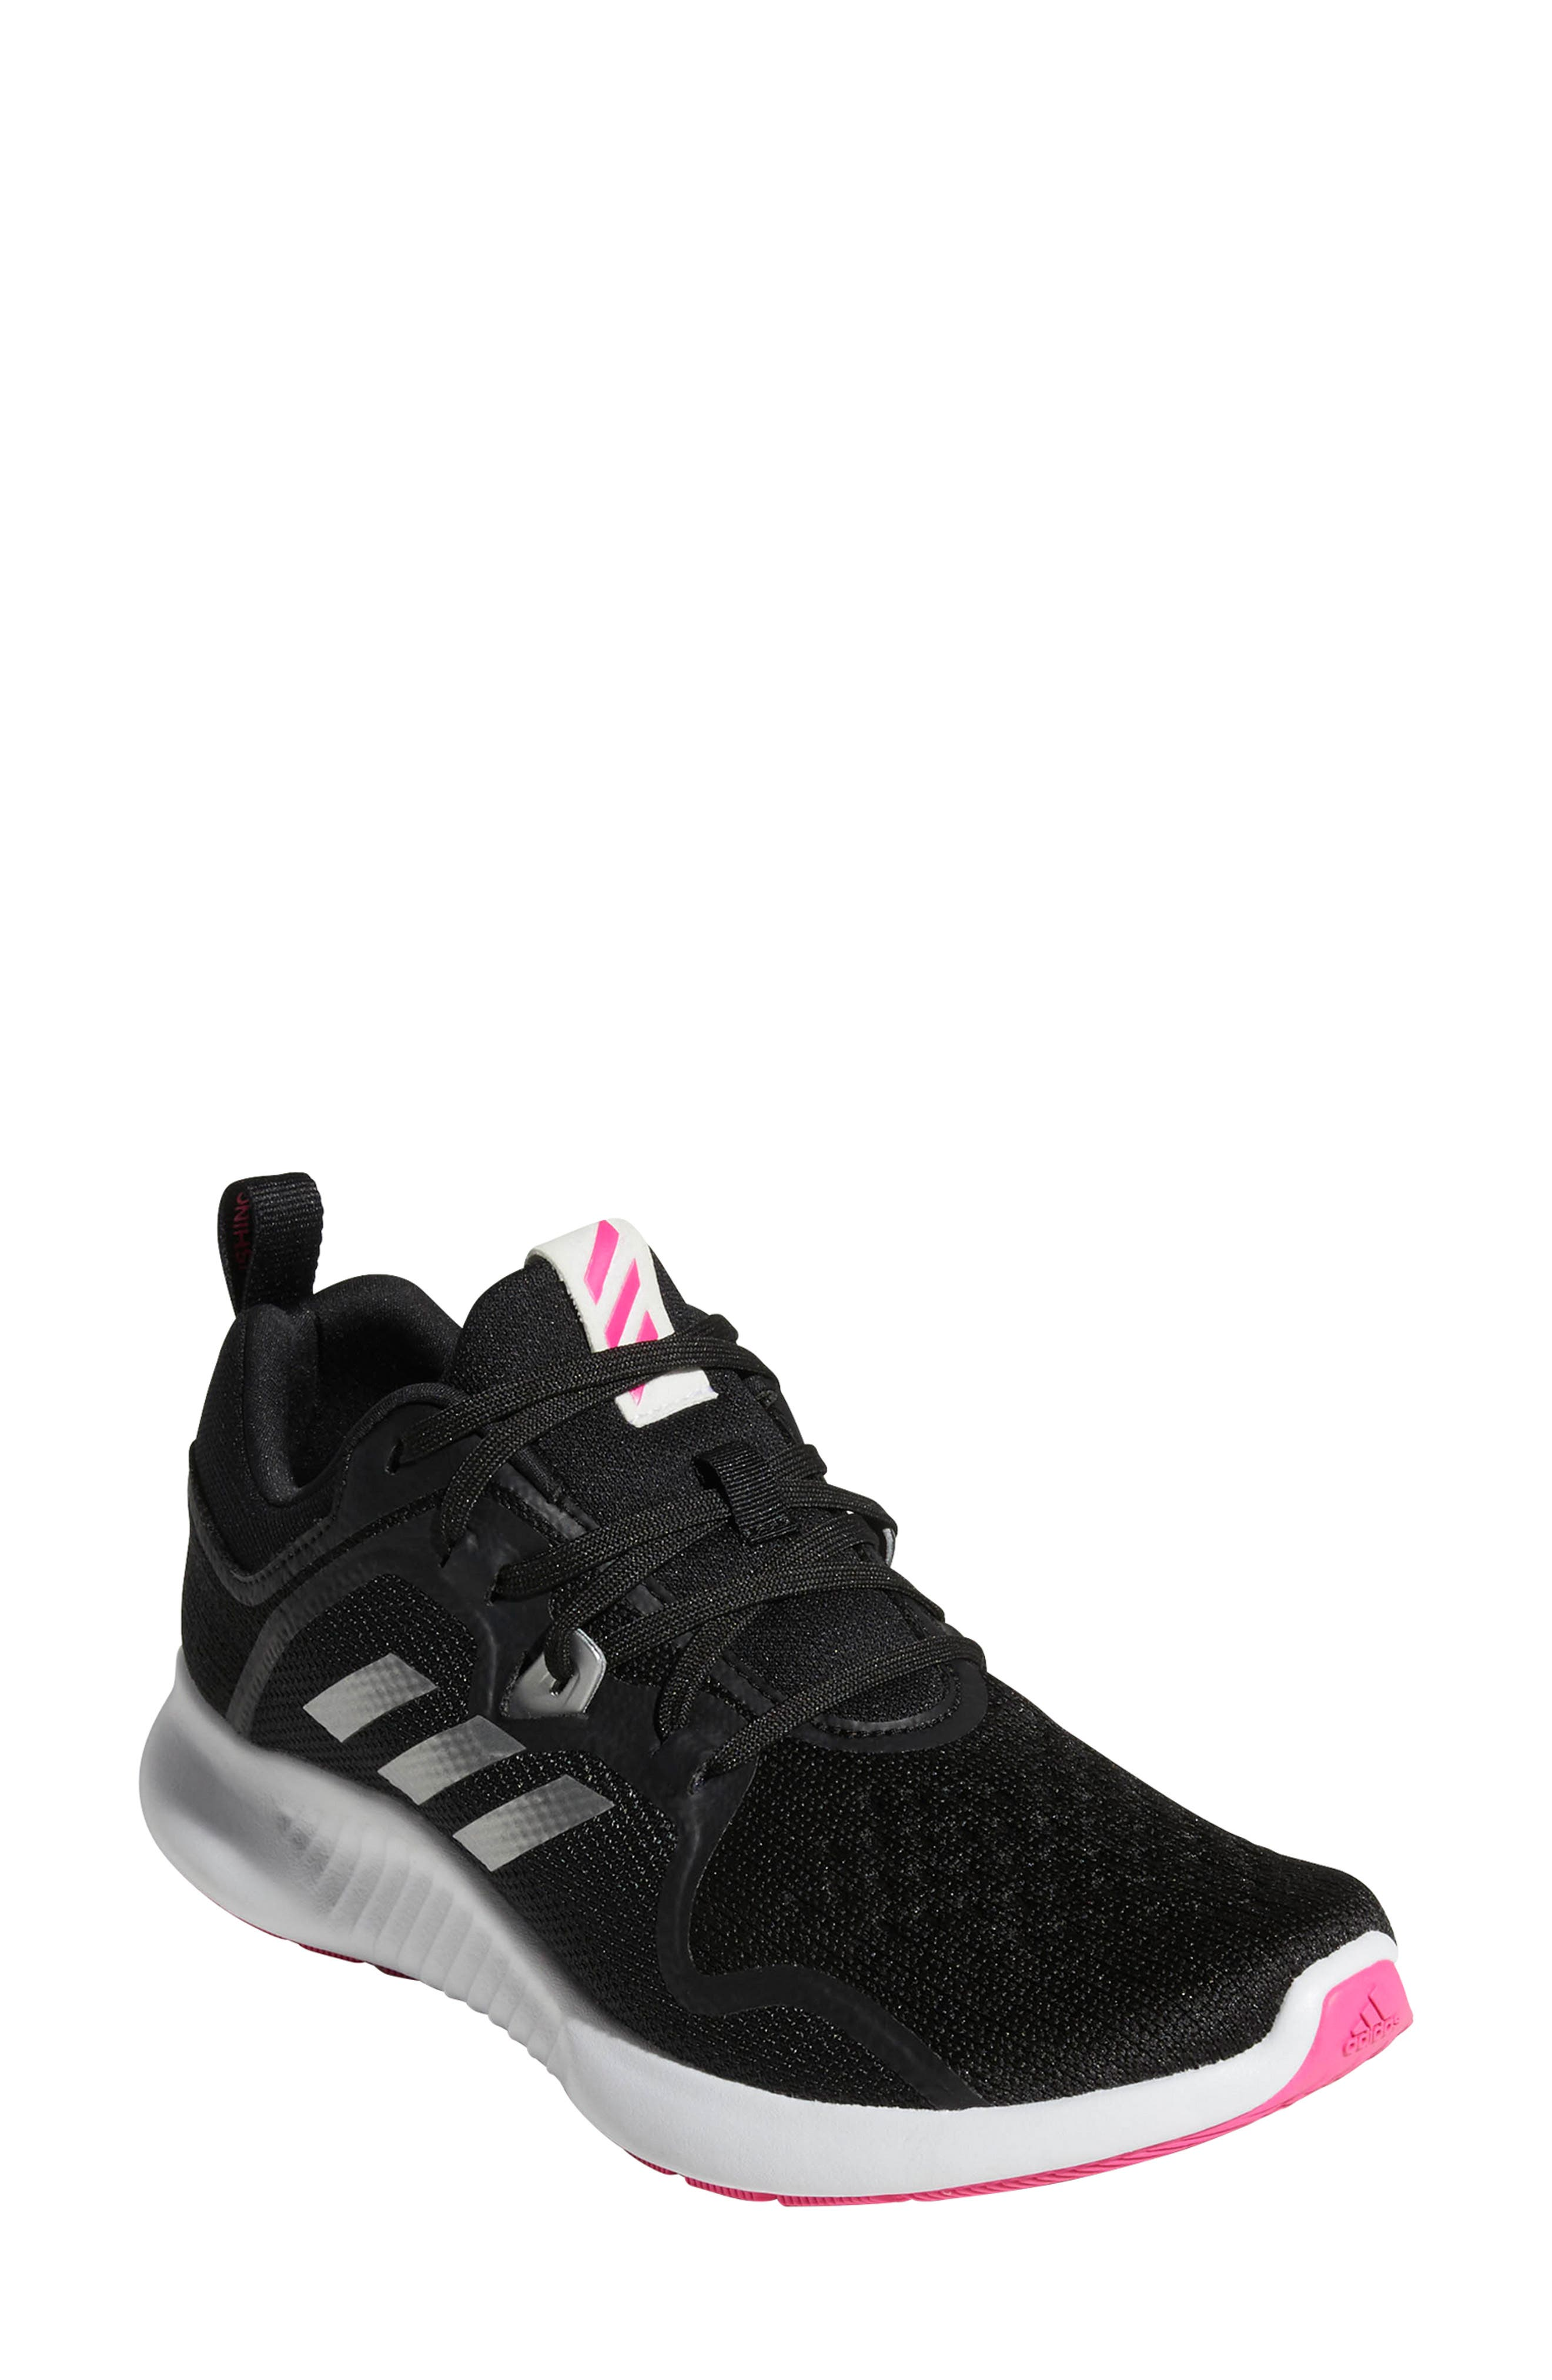 adidas new shoes women